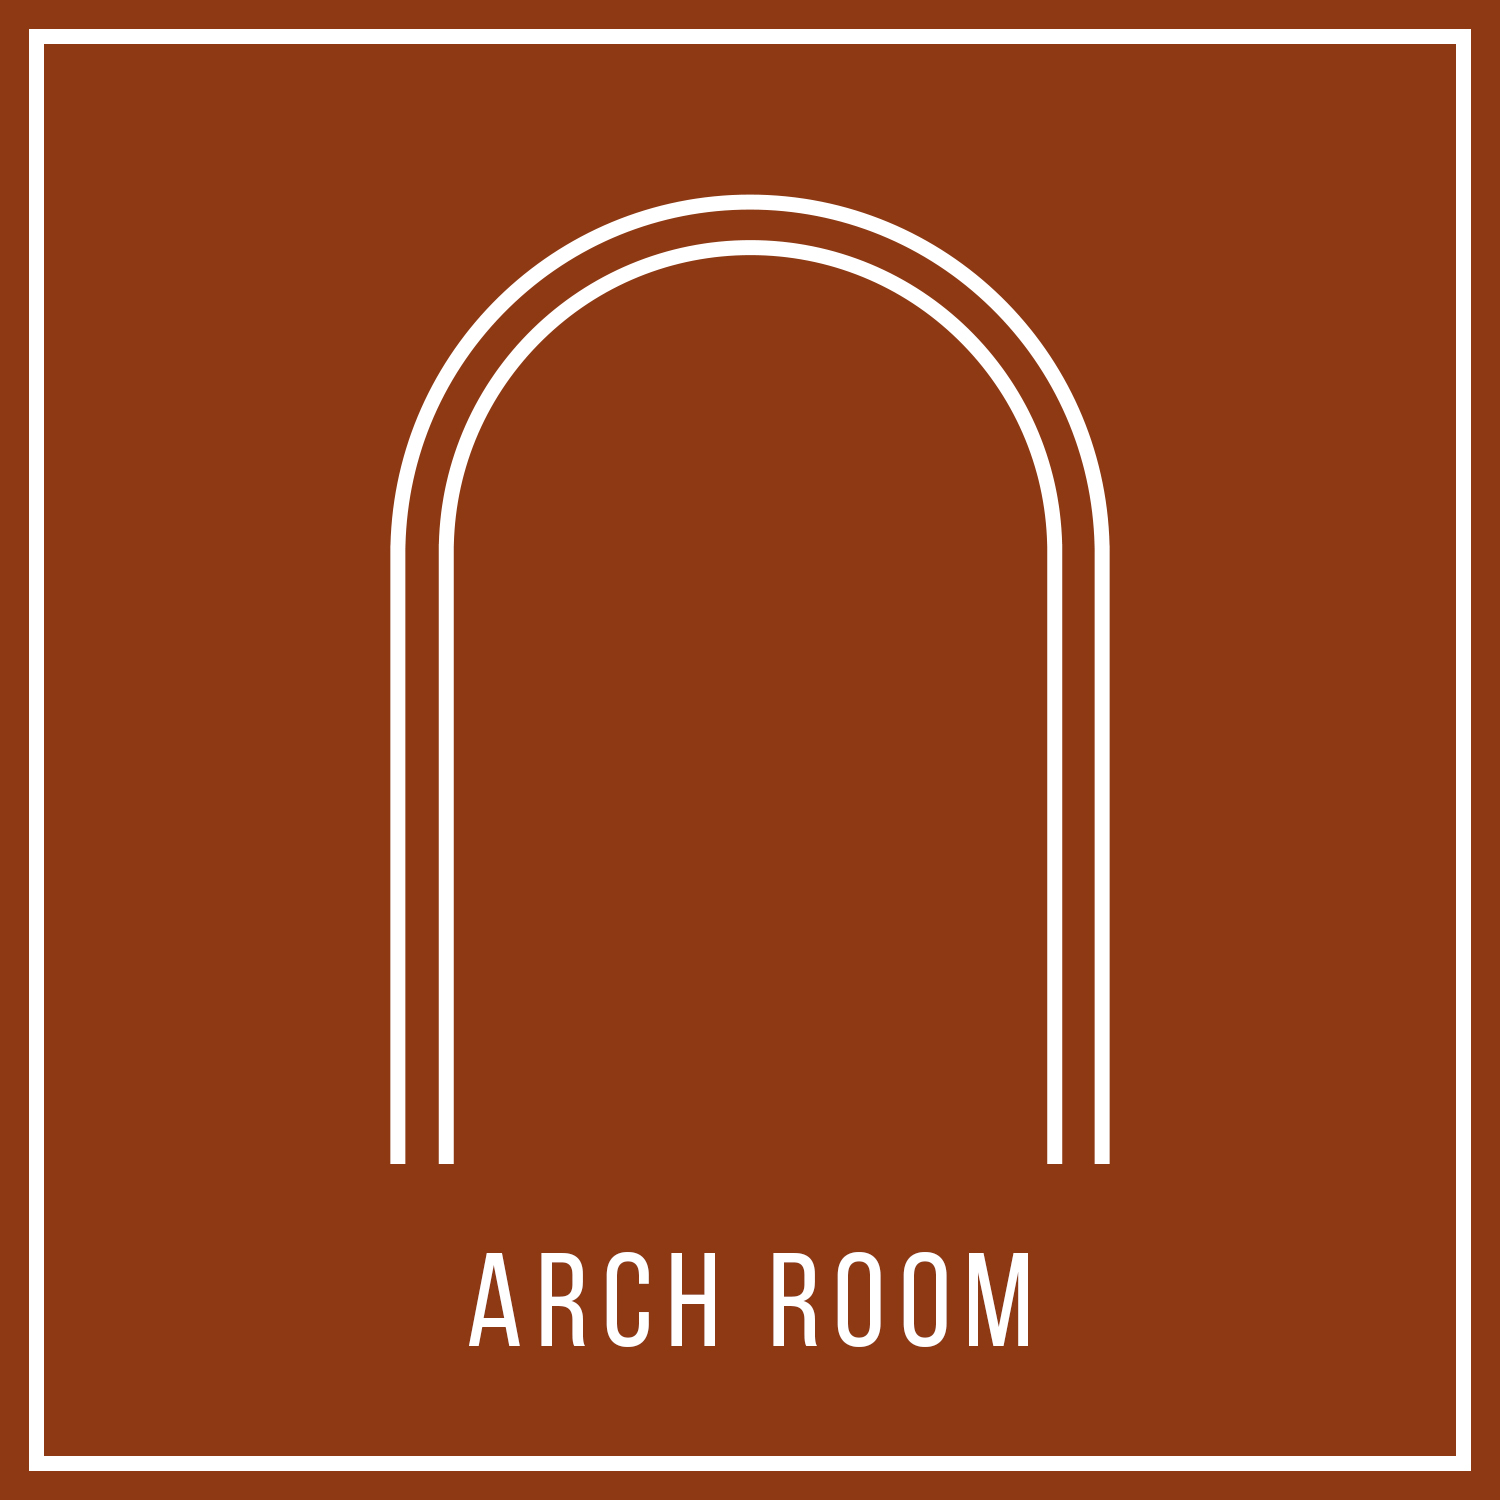 aya-kapadokya-room-features-hearth-suite-square-arch-room